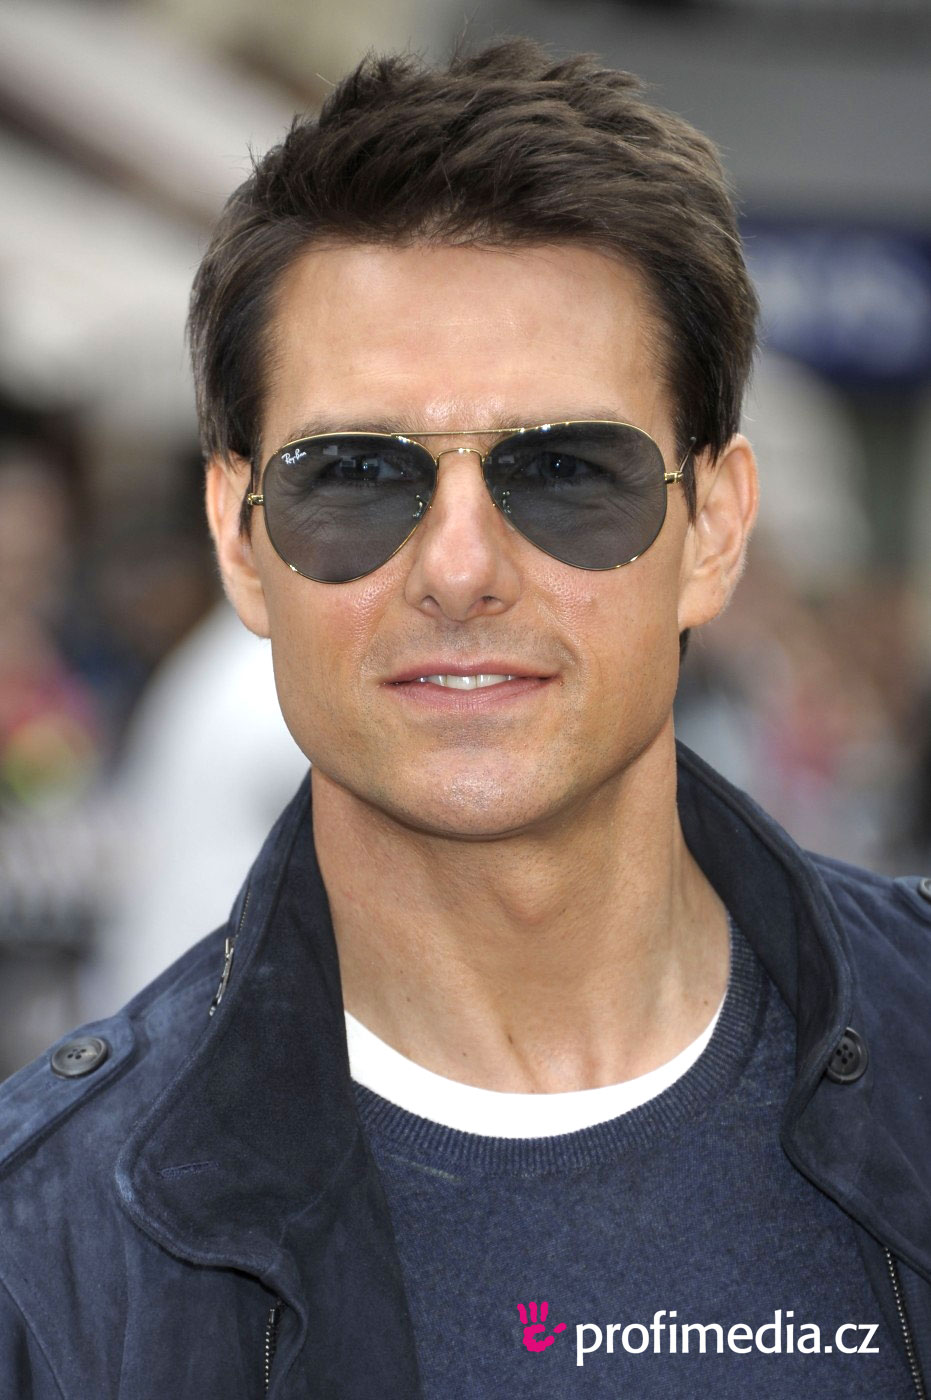 Tom cruise hairstyle easyhairstyler you can try this tom cruises hairstyle with your own photo upload at easyhairstyler urmus Images